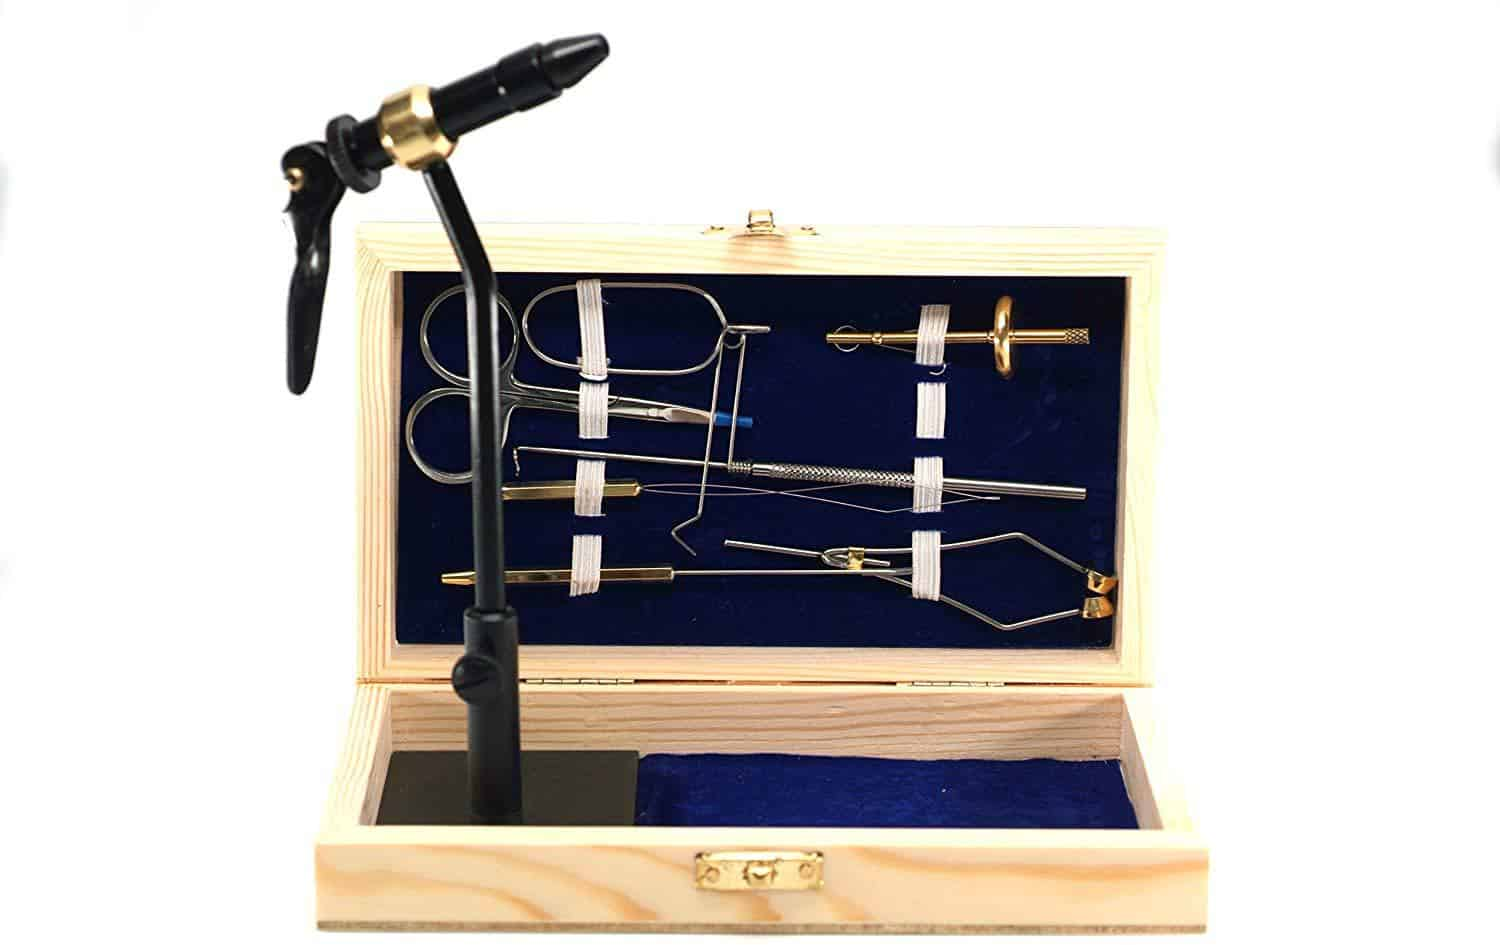 S.F. Products Standard Fly Tying Tool Kit